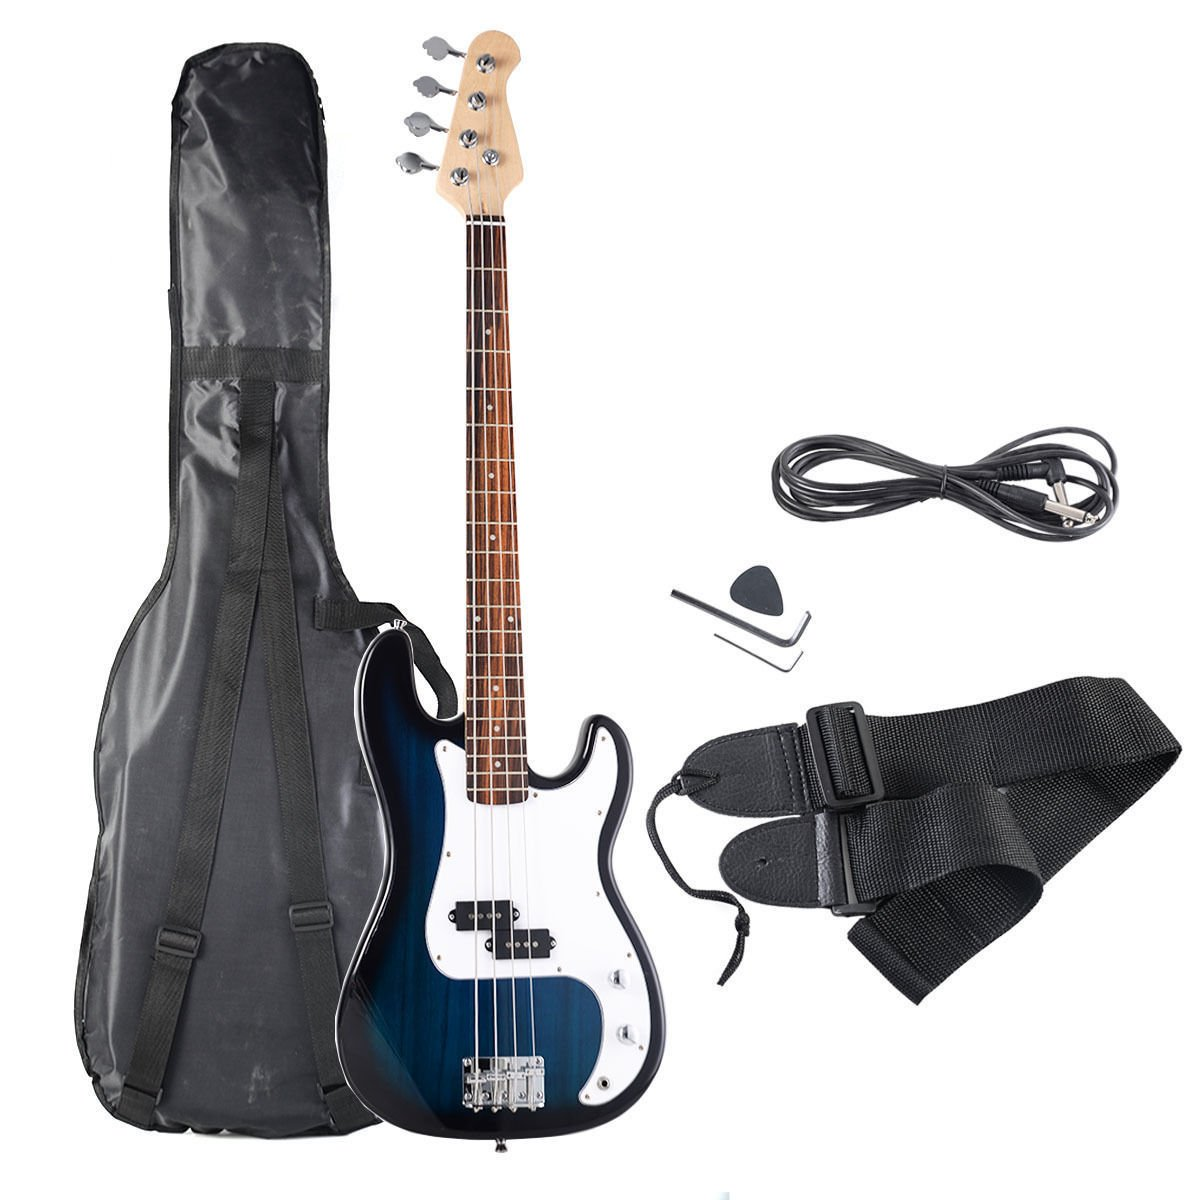 Goplus Electric Bass Guitar Full Size 4 String with Strap Guitar Bag Amp Cord (Blue Bass 4 Straps) Superbuy